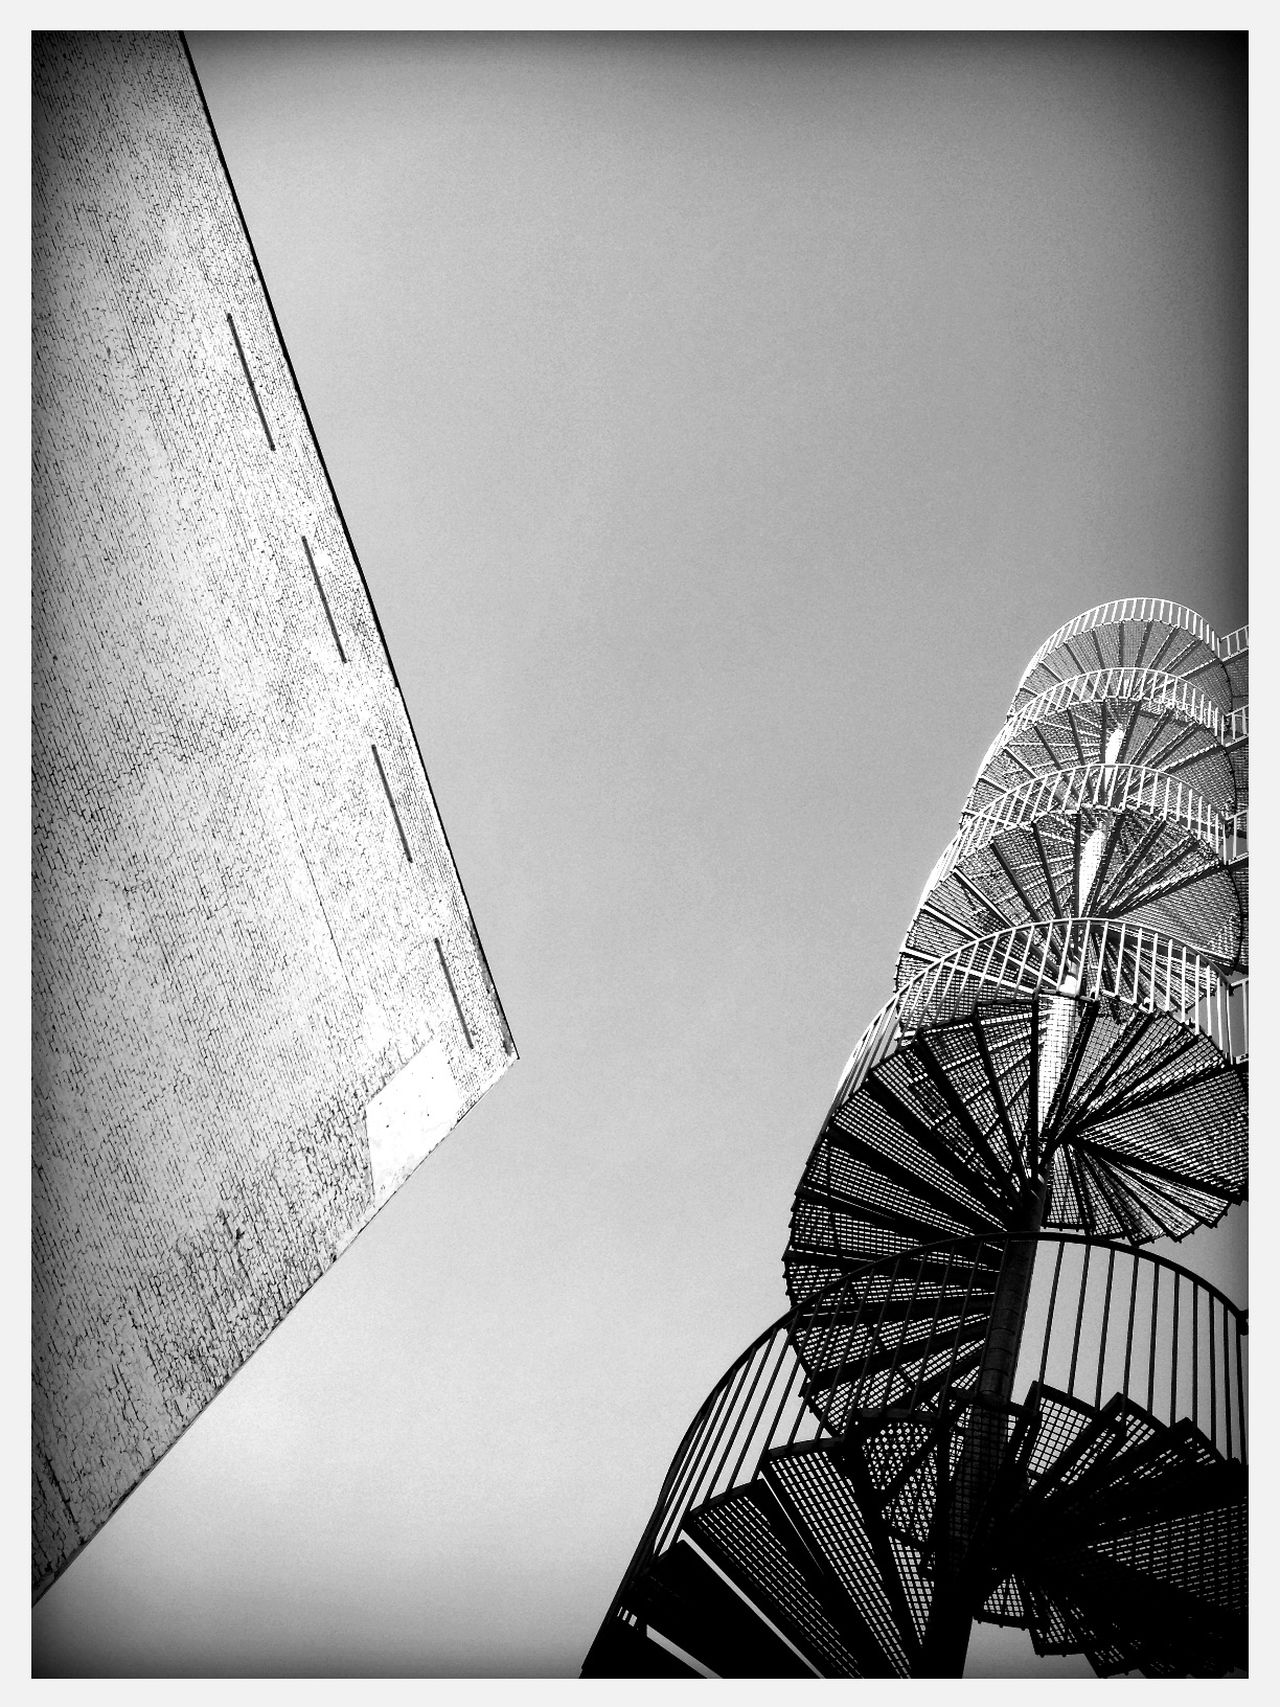 Low angle view of spiral staircase by building against clear sky